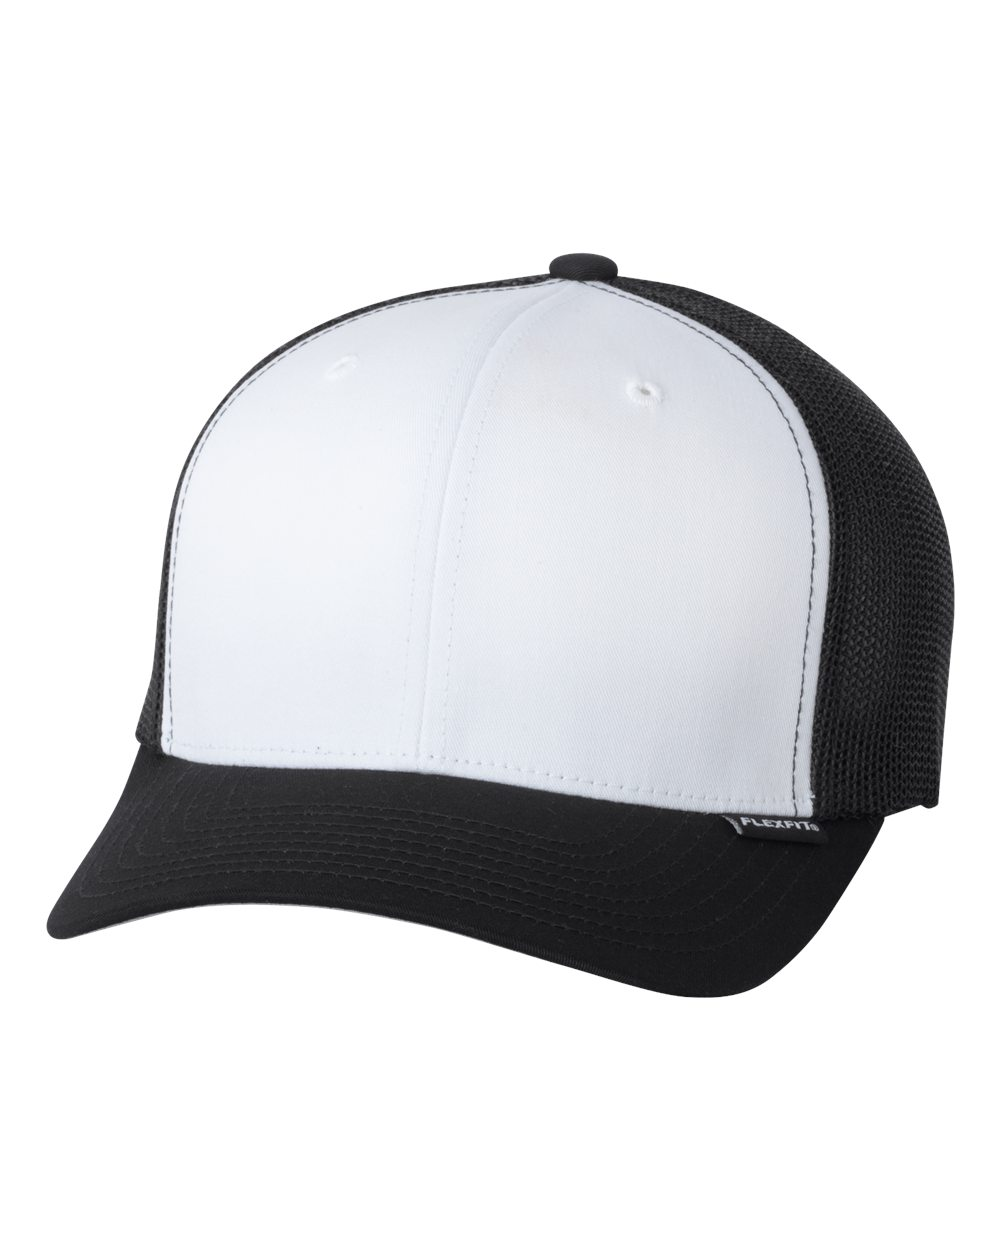 flexfit 6511 - trucker cap | wordans usa ROBBPJN